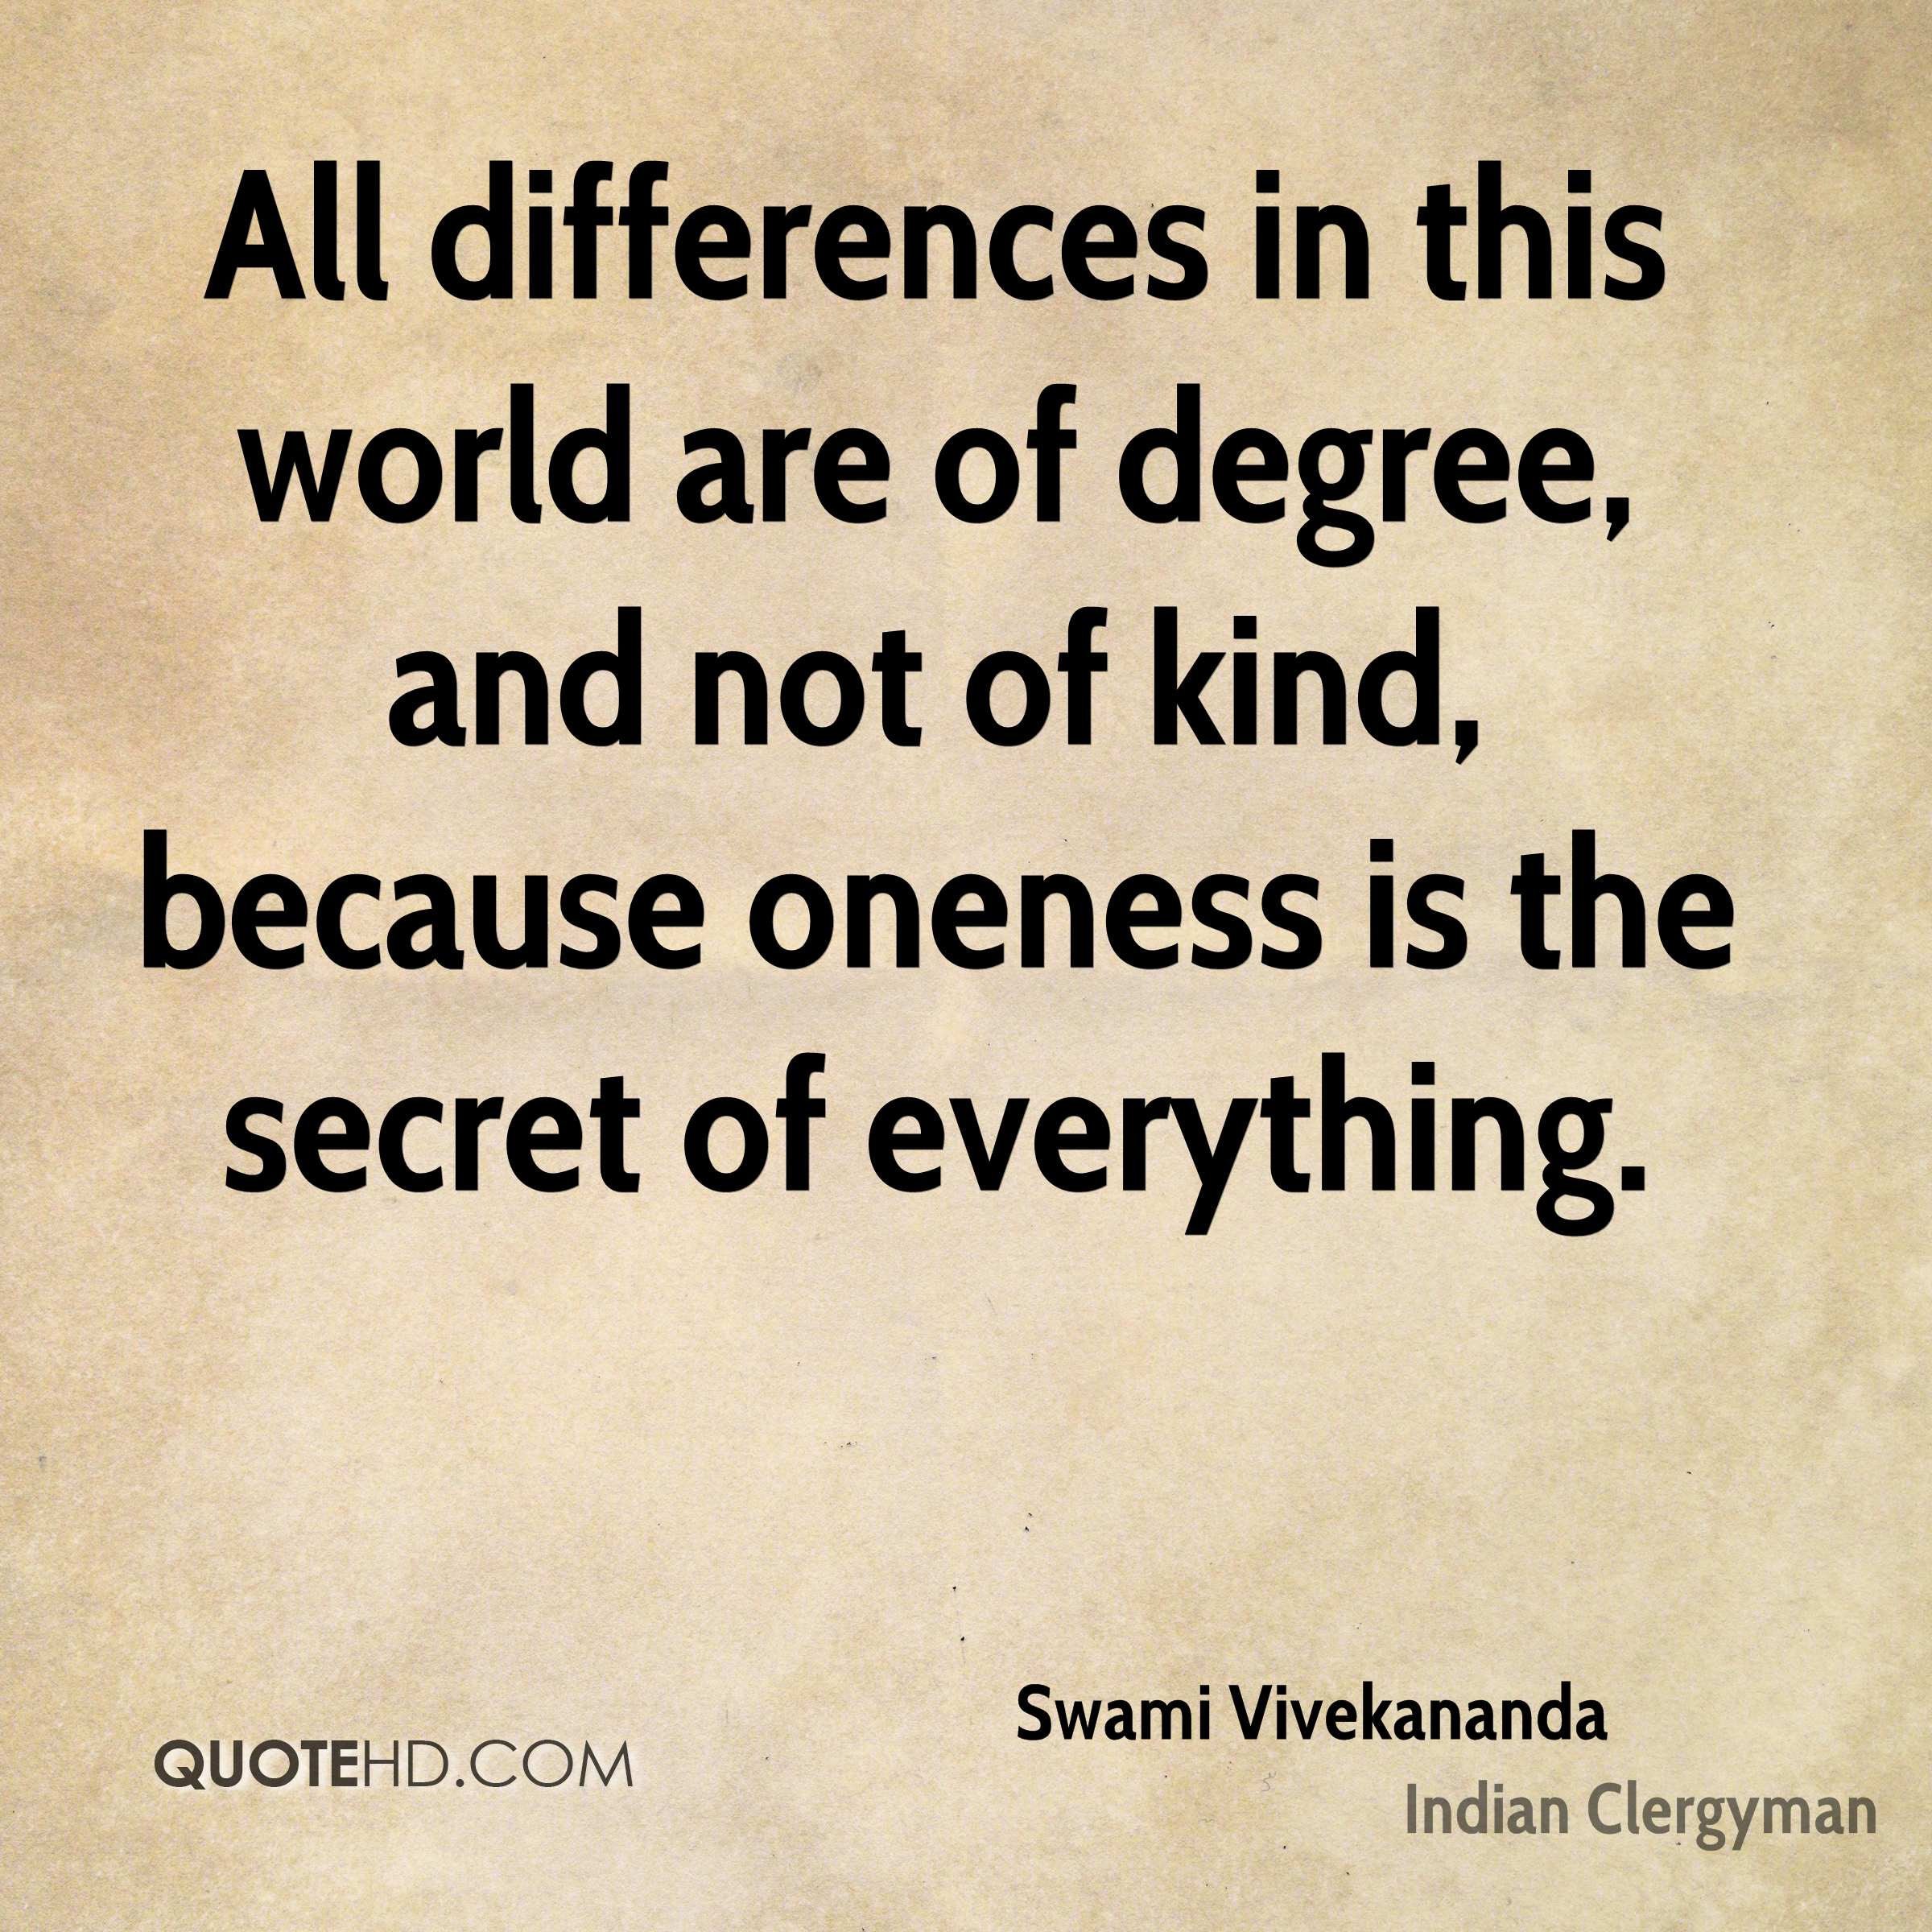 All differences in this world are of degree, and not of kind, because oneness is the secret of everything.